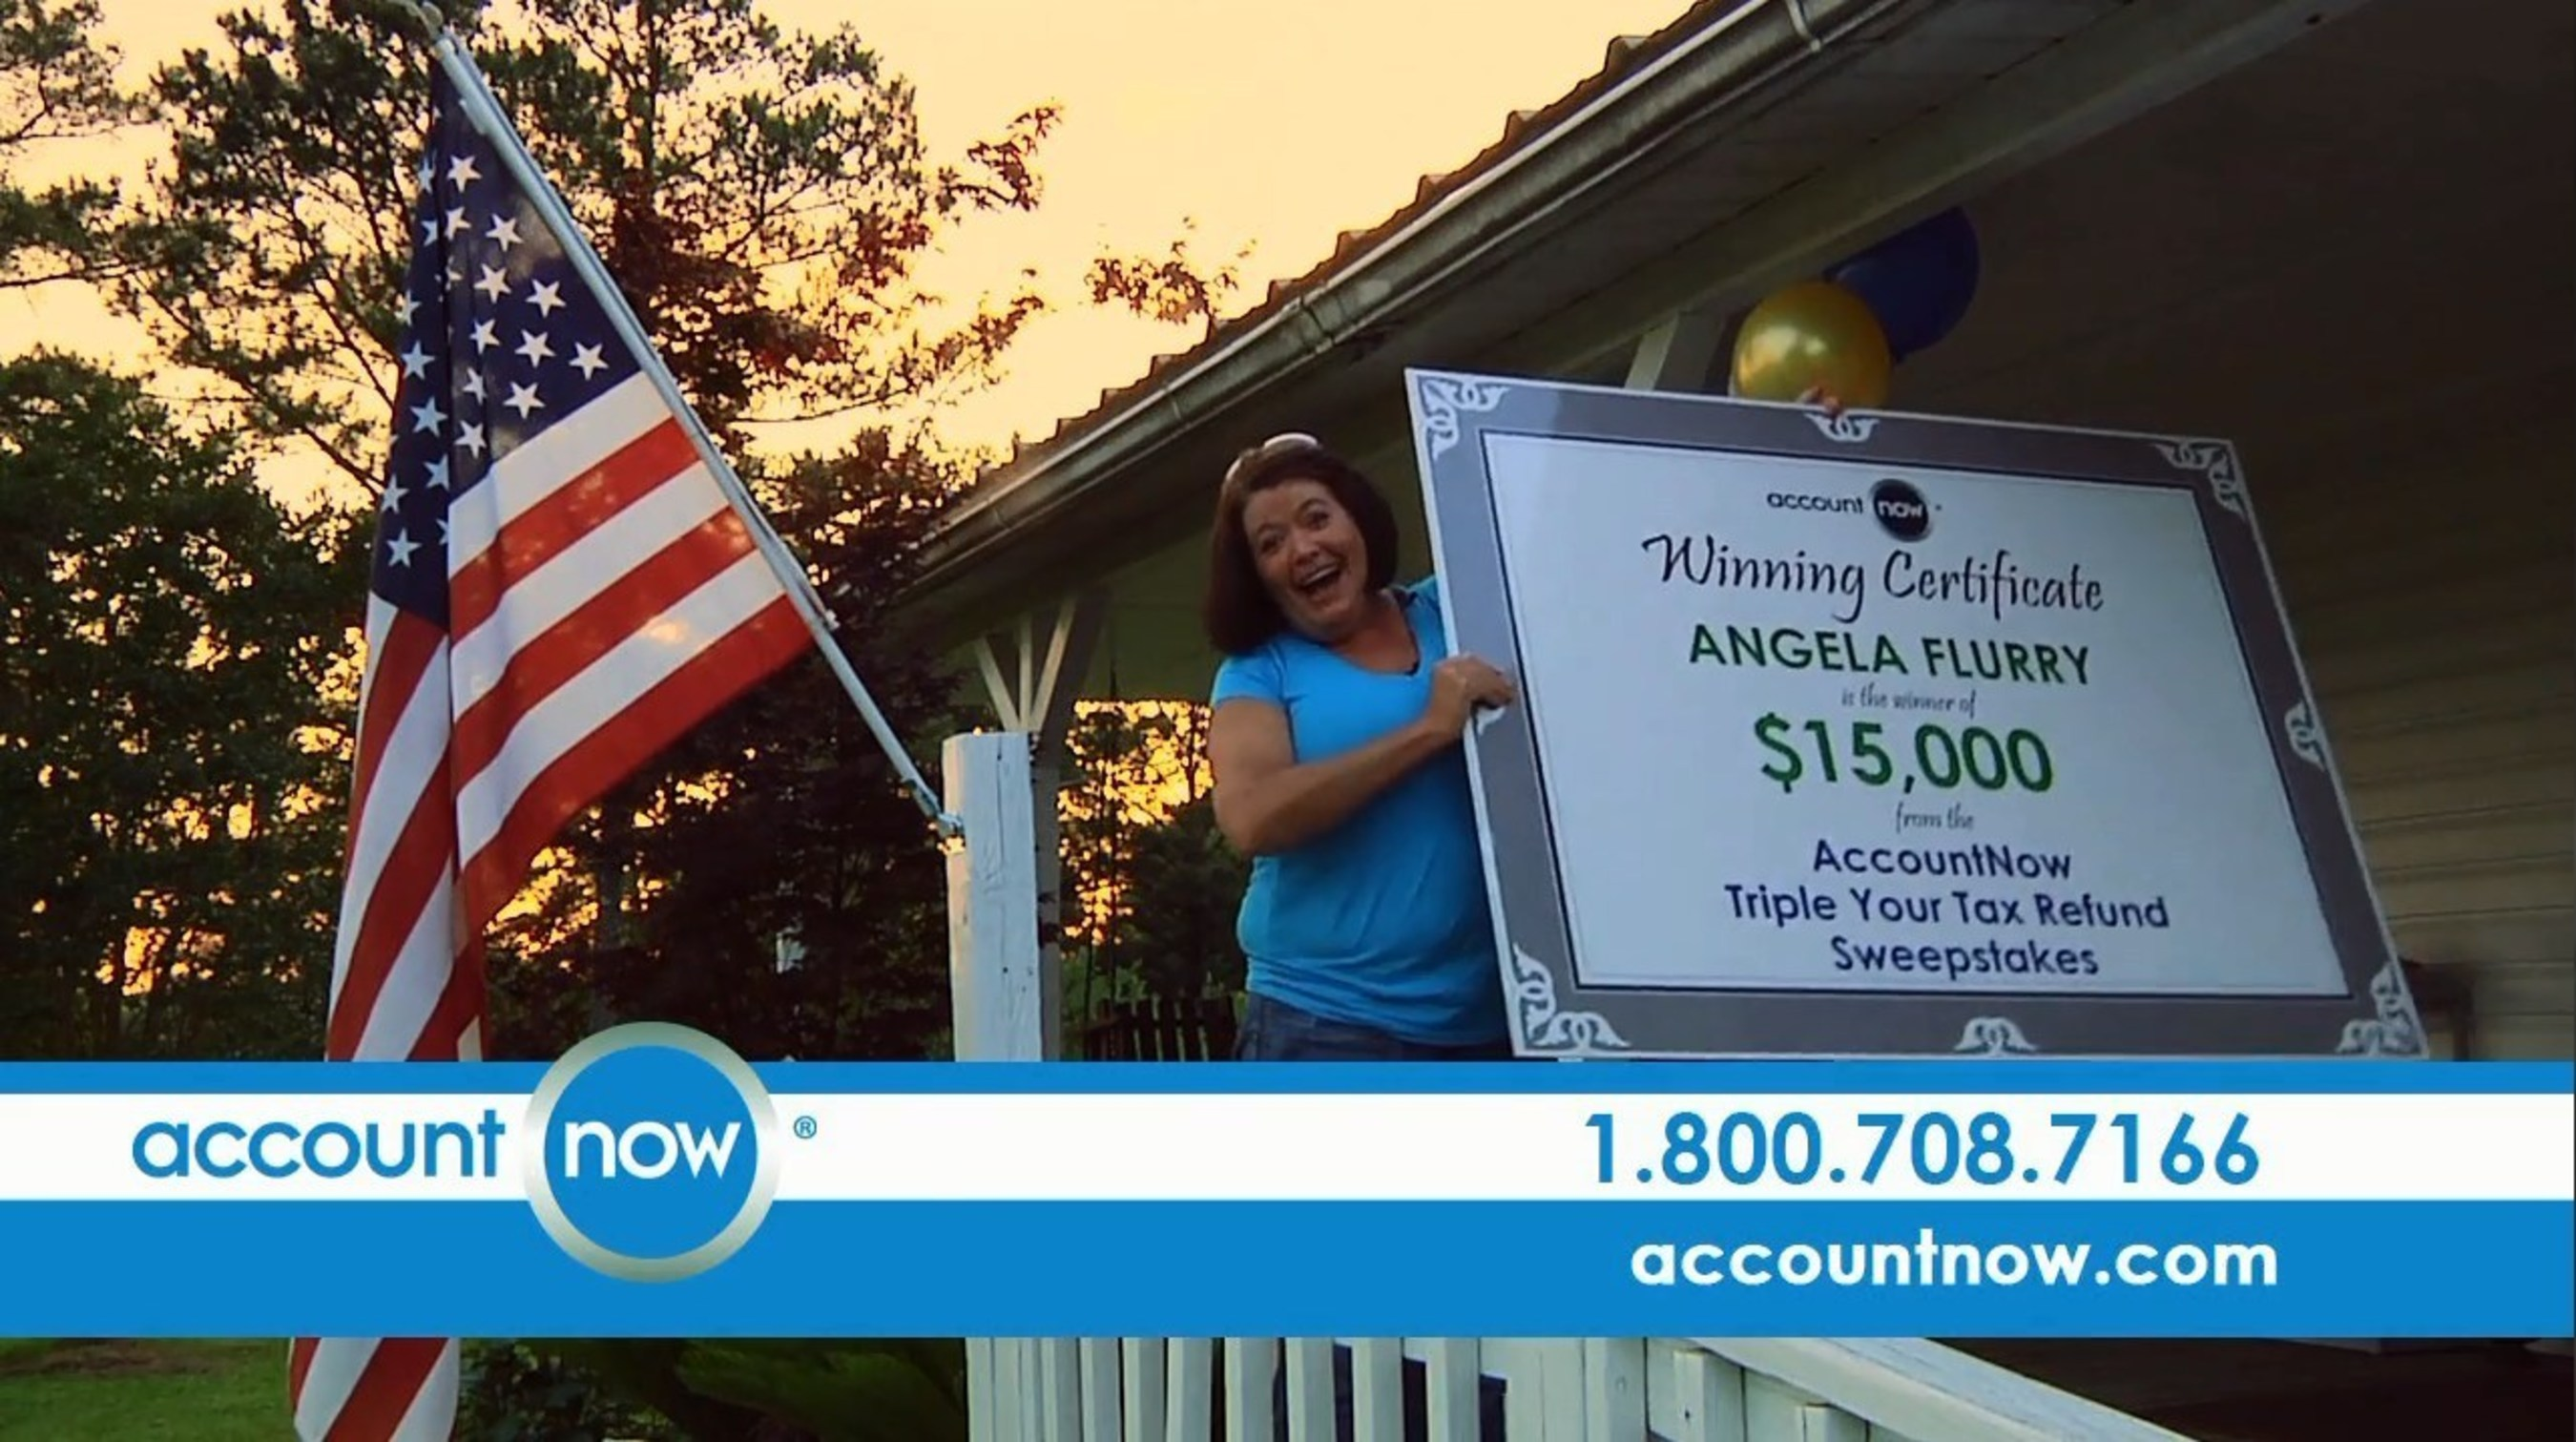 alabama woman is latest winner of accountnow triple your tax refund sweepstakes - Accountnow Gold Visa Prepaid Card